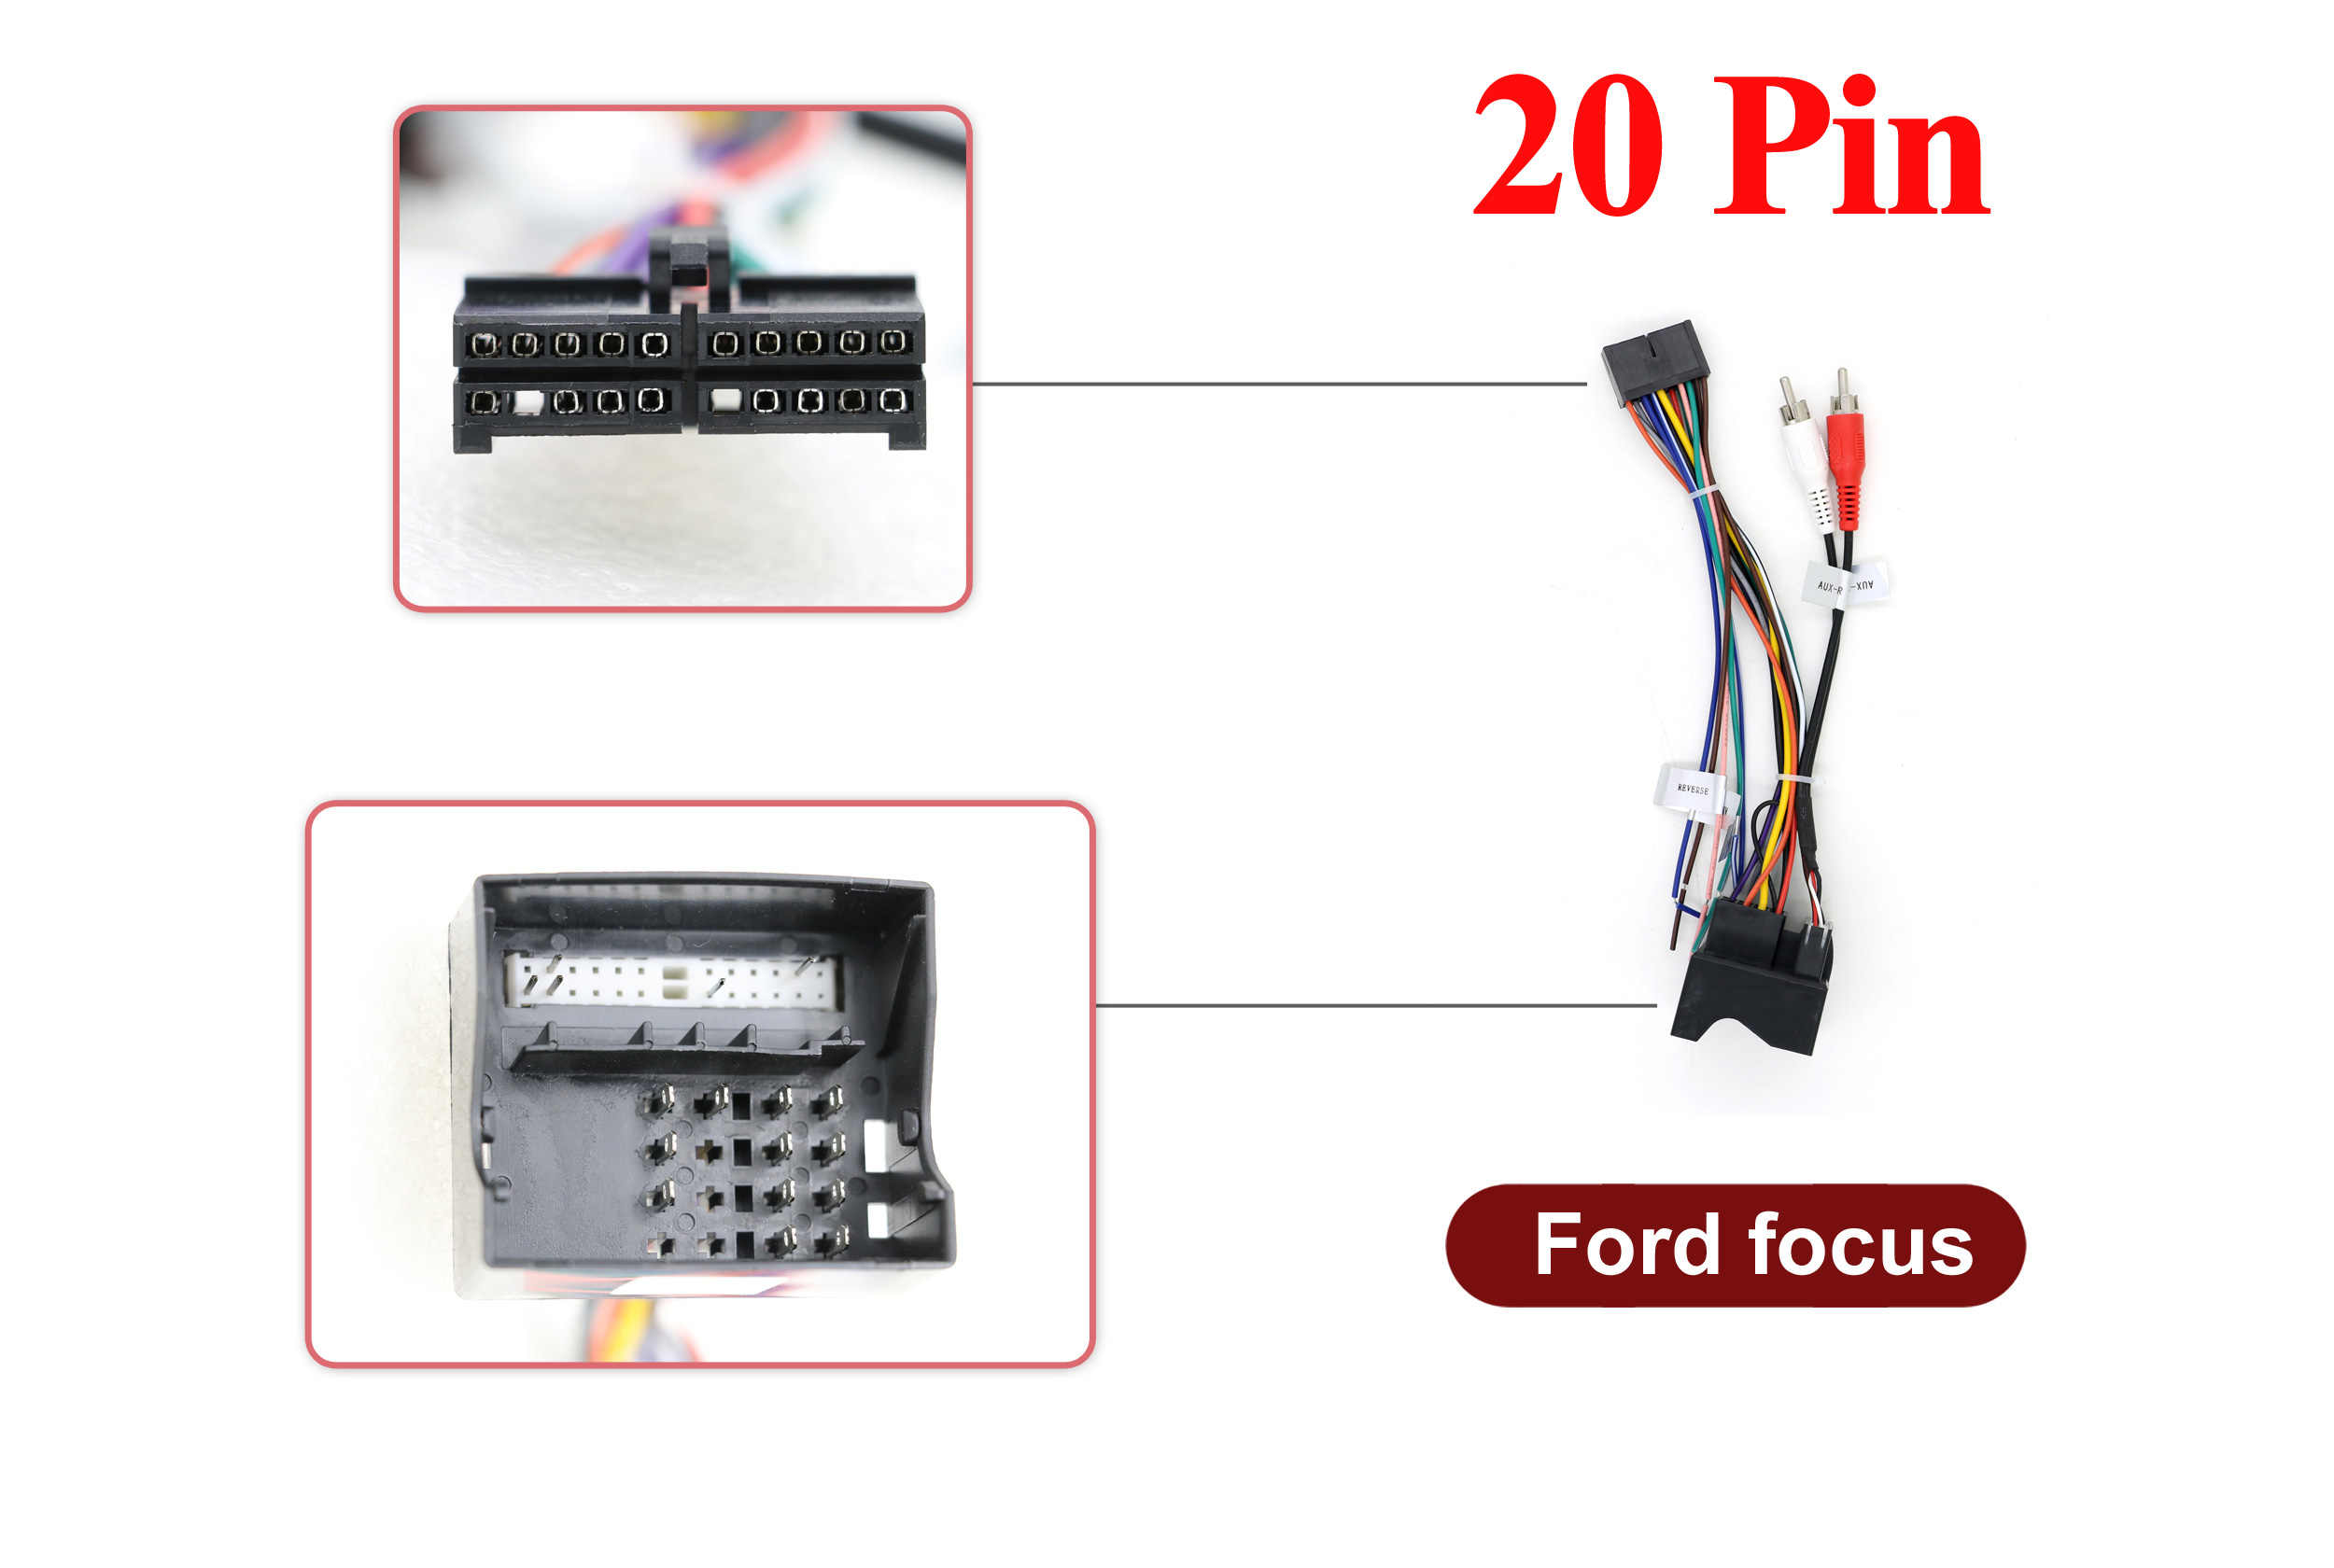 20 Pin For Ford Focus Iso Wiring Harness Car Radio Adaptor Connector Wire Plug And Play Cables Adapters Sockets Aliexpress